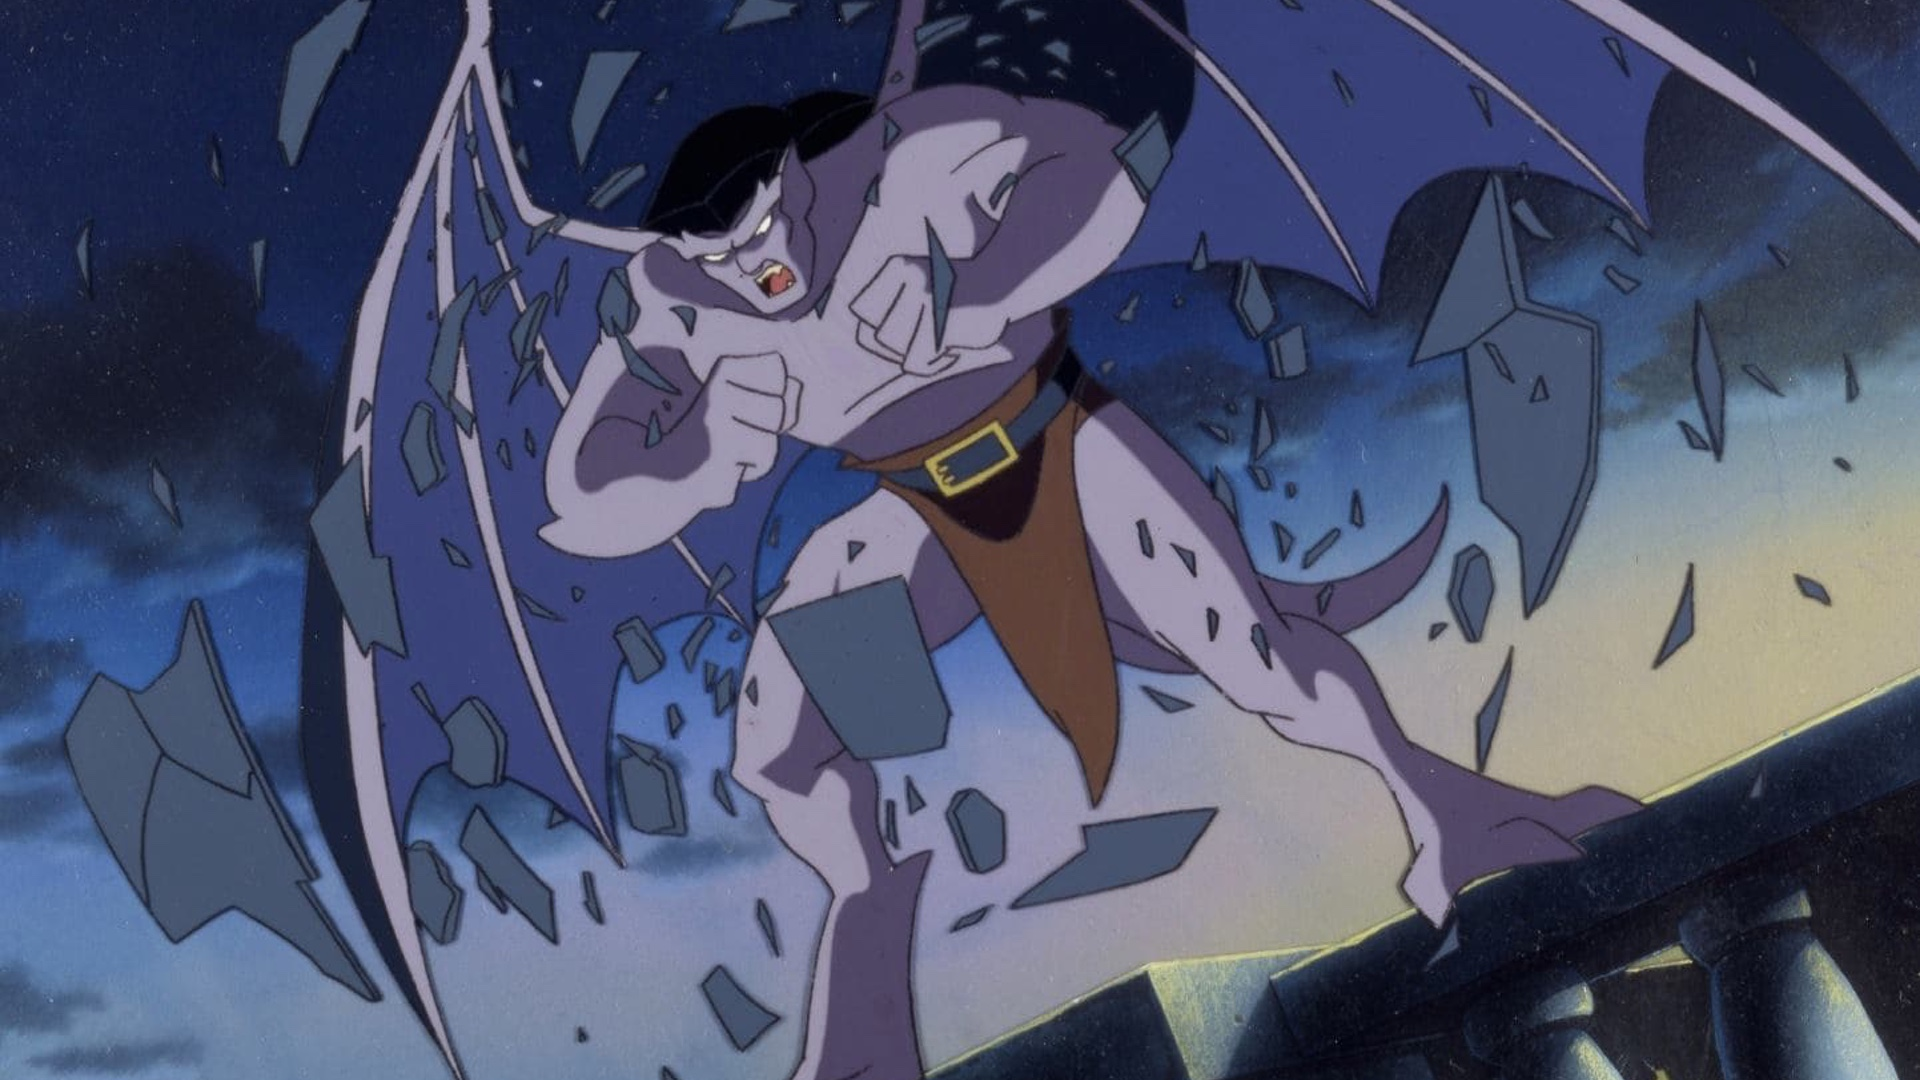 keith-david-wants-disneys-gargoyles-rebooted-and-he-shares-his-favorite-moment-from-the-show-social.jpg